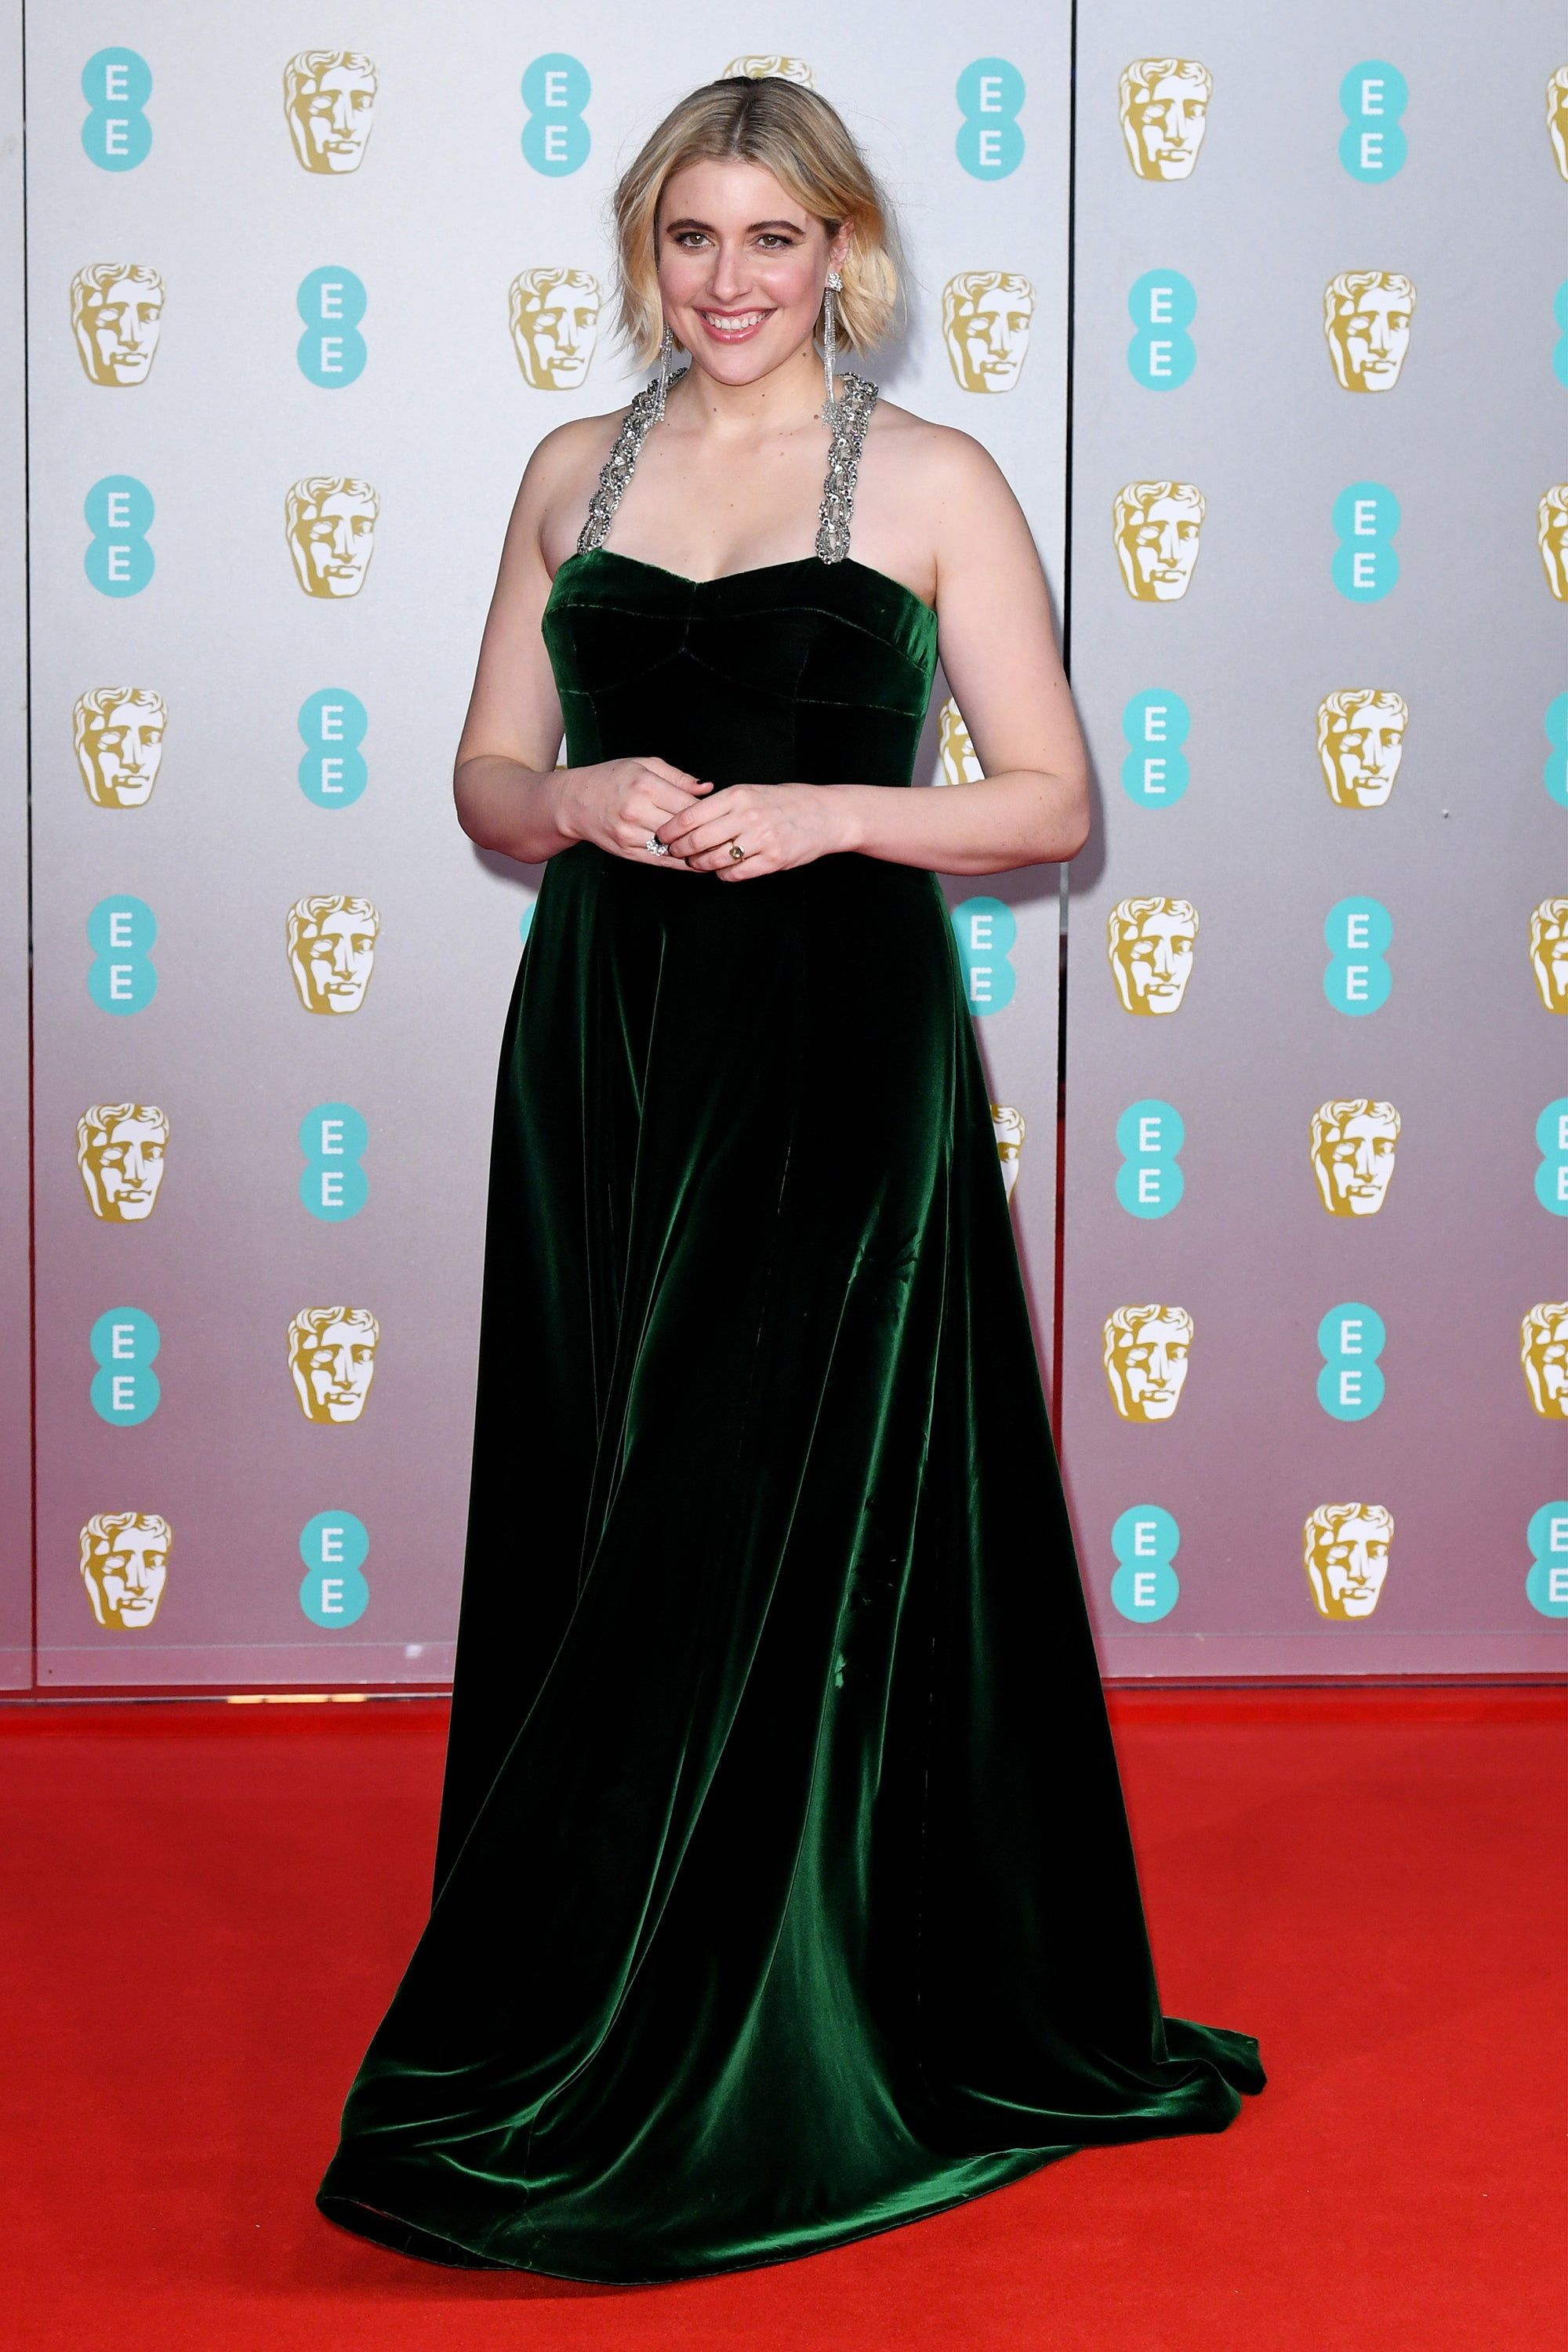 The Baftas Red Carpet Was Full Of Big Bright Colors In 2020 With Images Bafta Red Carpet Nice Dresses